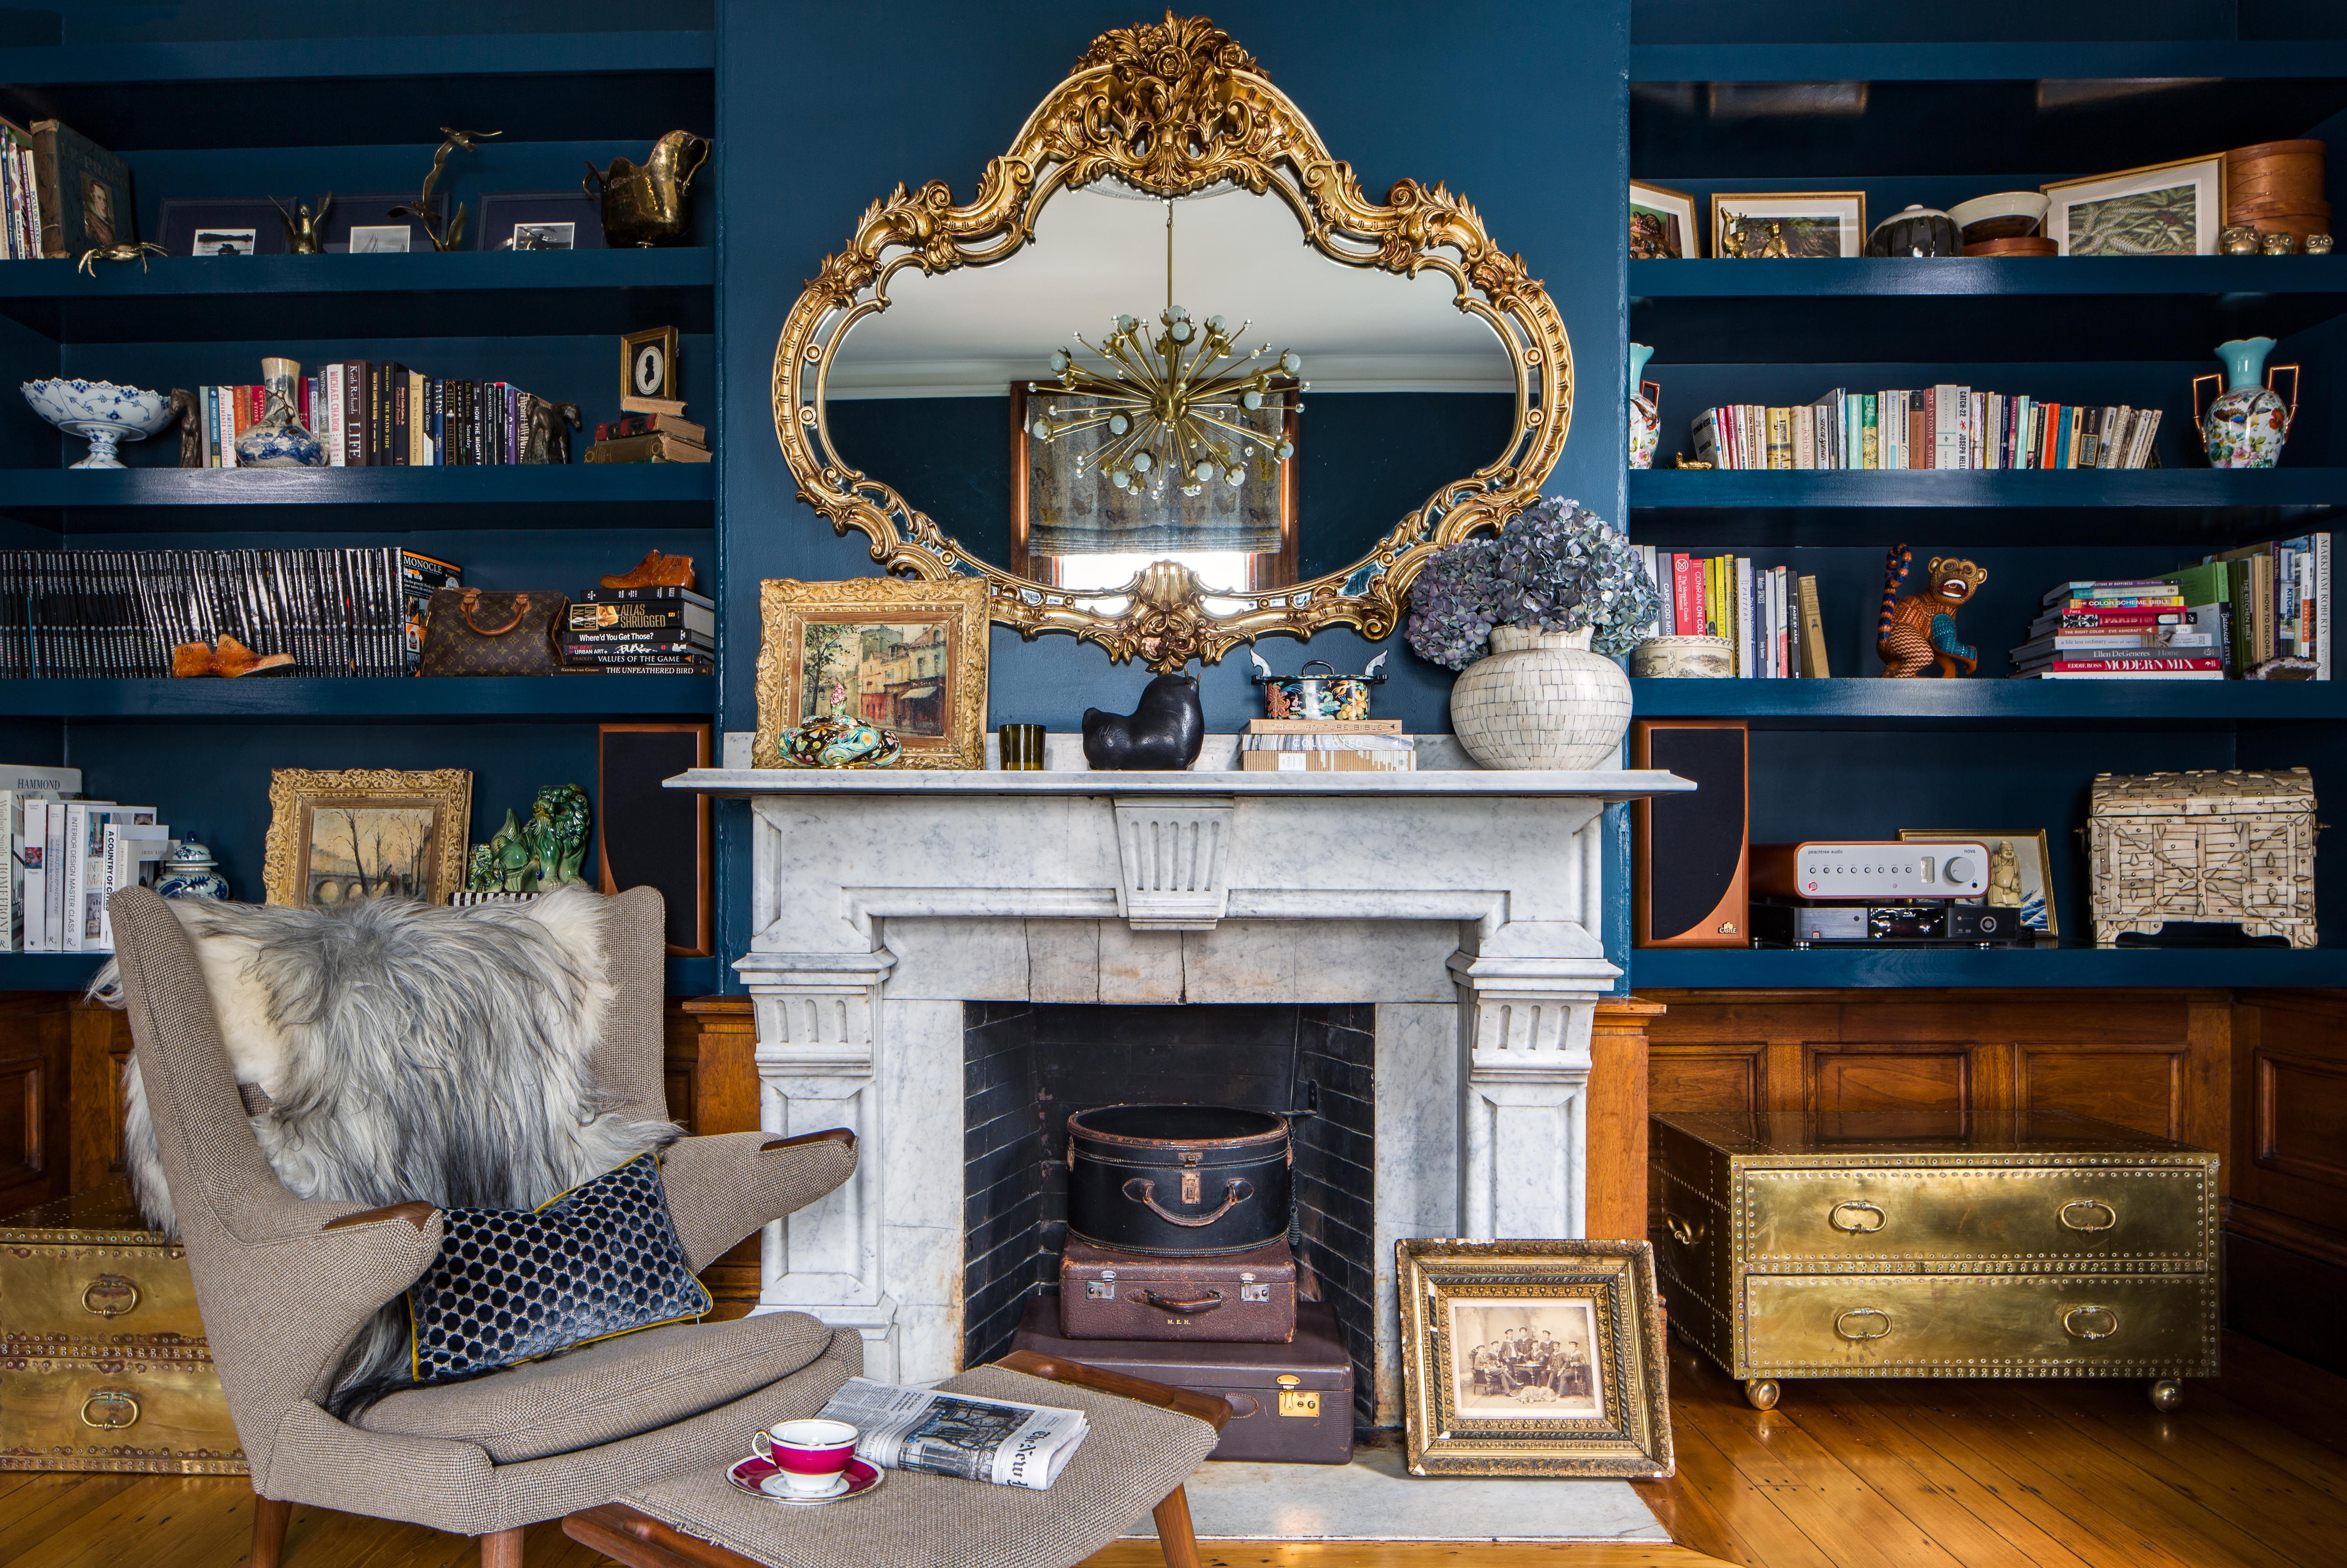 This Historic Victorian Home Is a Sun-Drenched Dream—and Surprisingly Family-Friendly